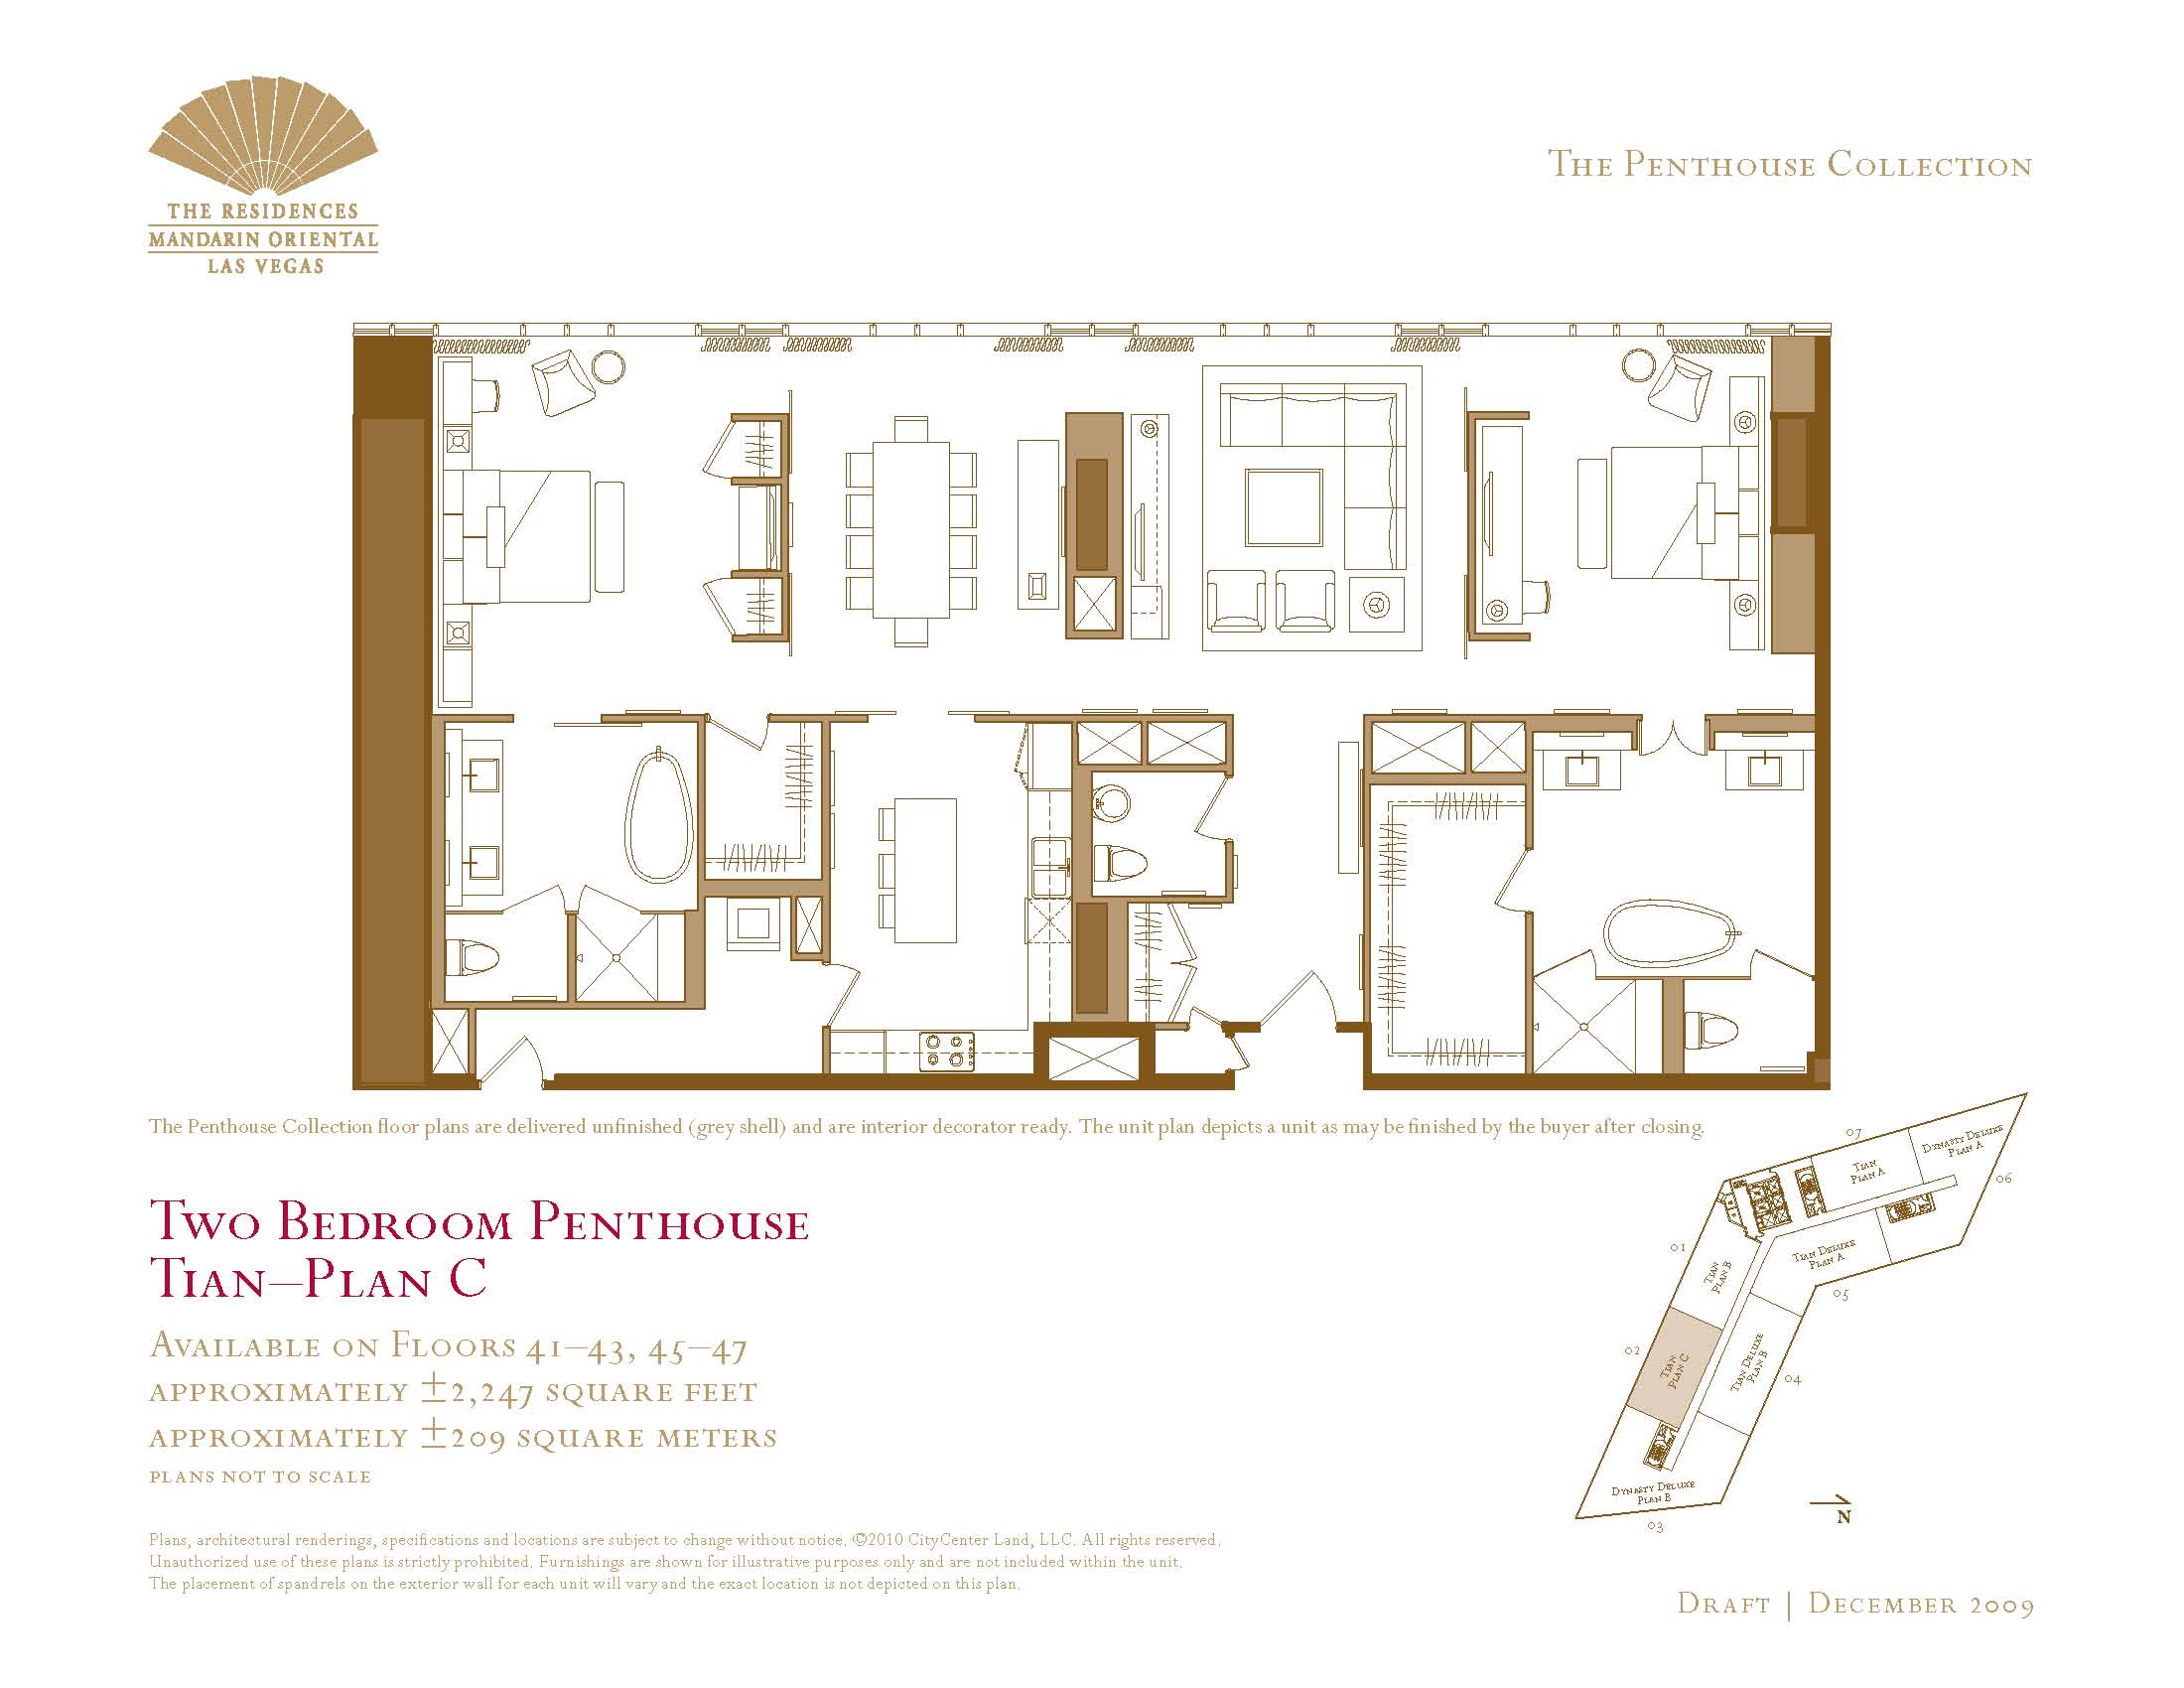 Two Bedroom Penthouse Floor Plans The Mandarin Oriental Las Vegas - Las vegas floor plans